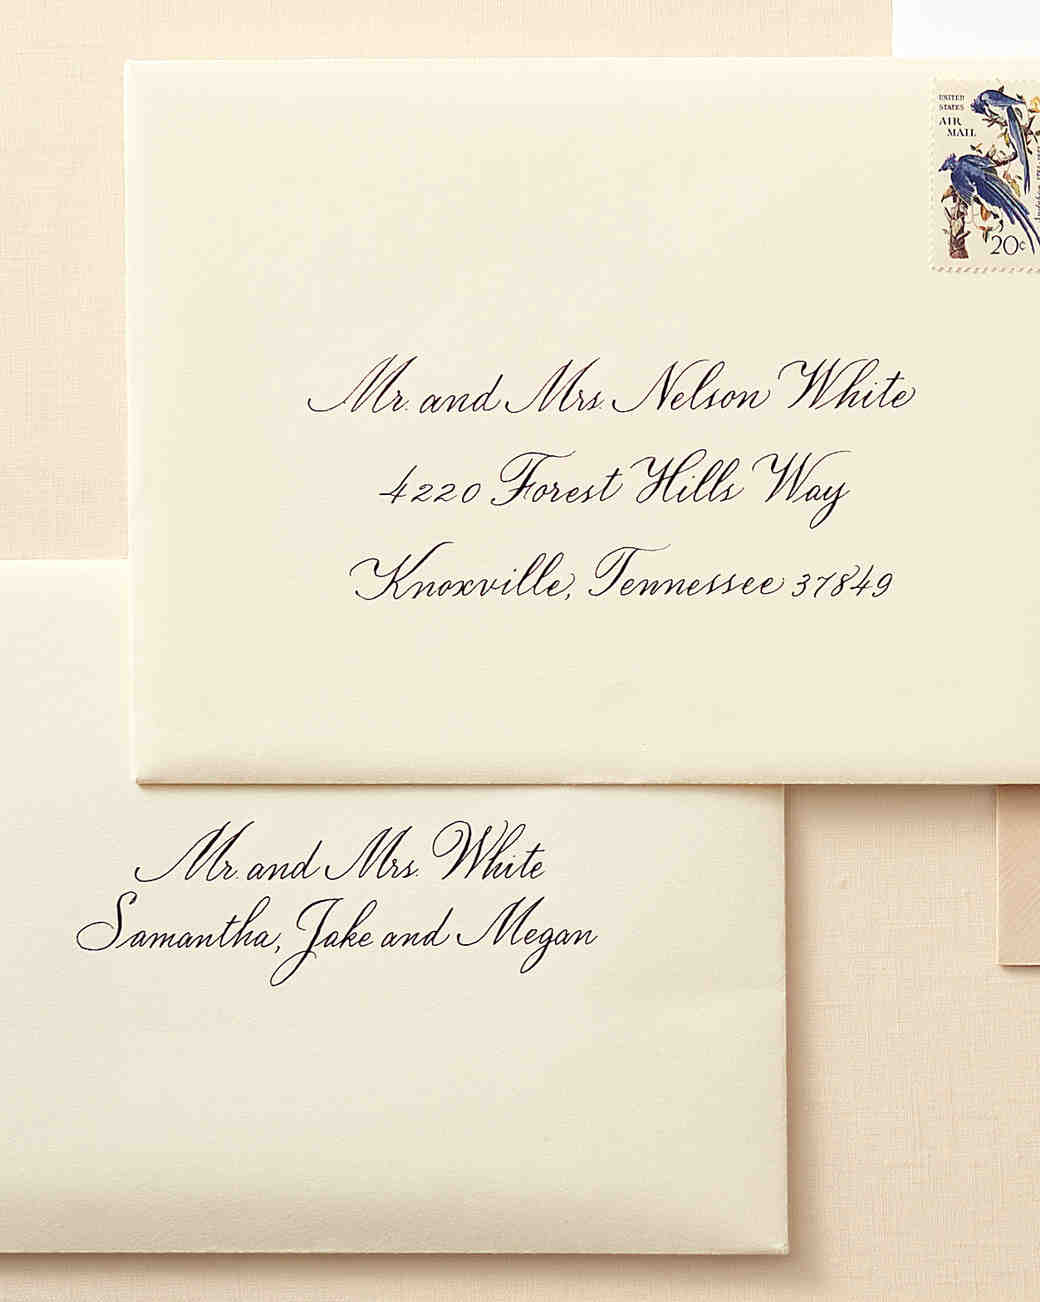 how to address wedding invitation envelopes wedding invitation envelopes To a Family With Children